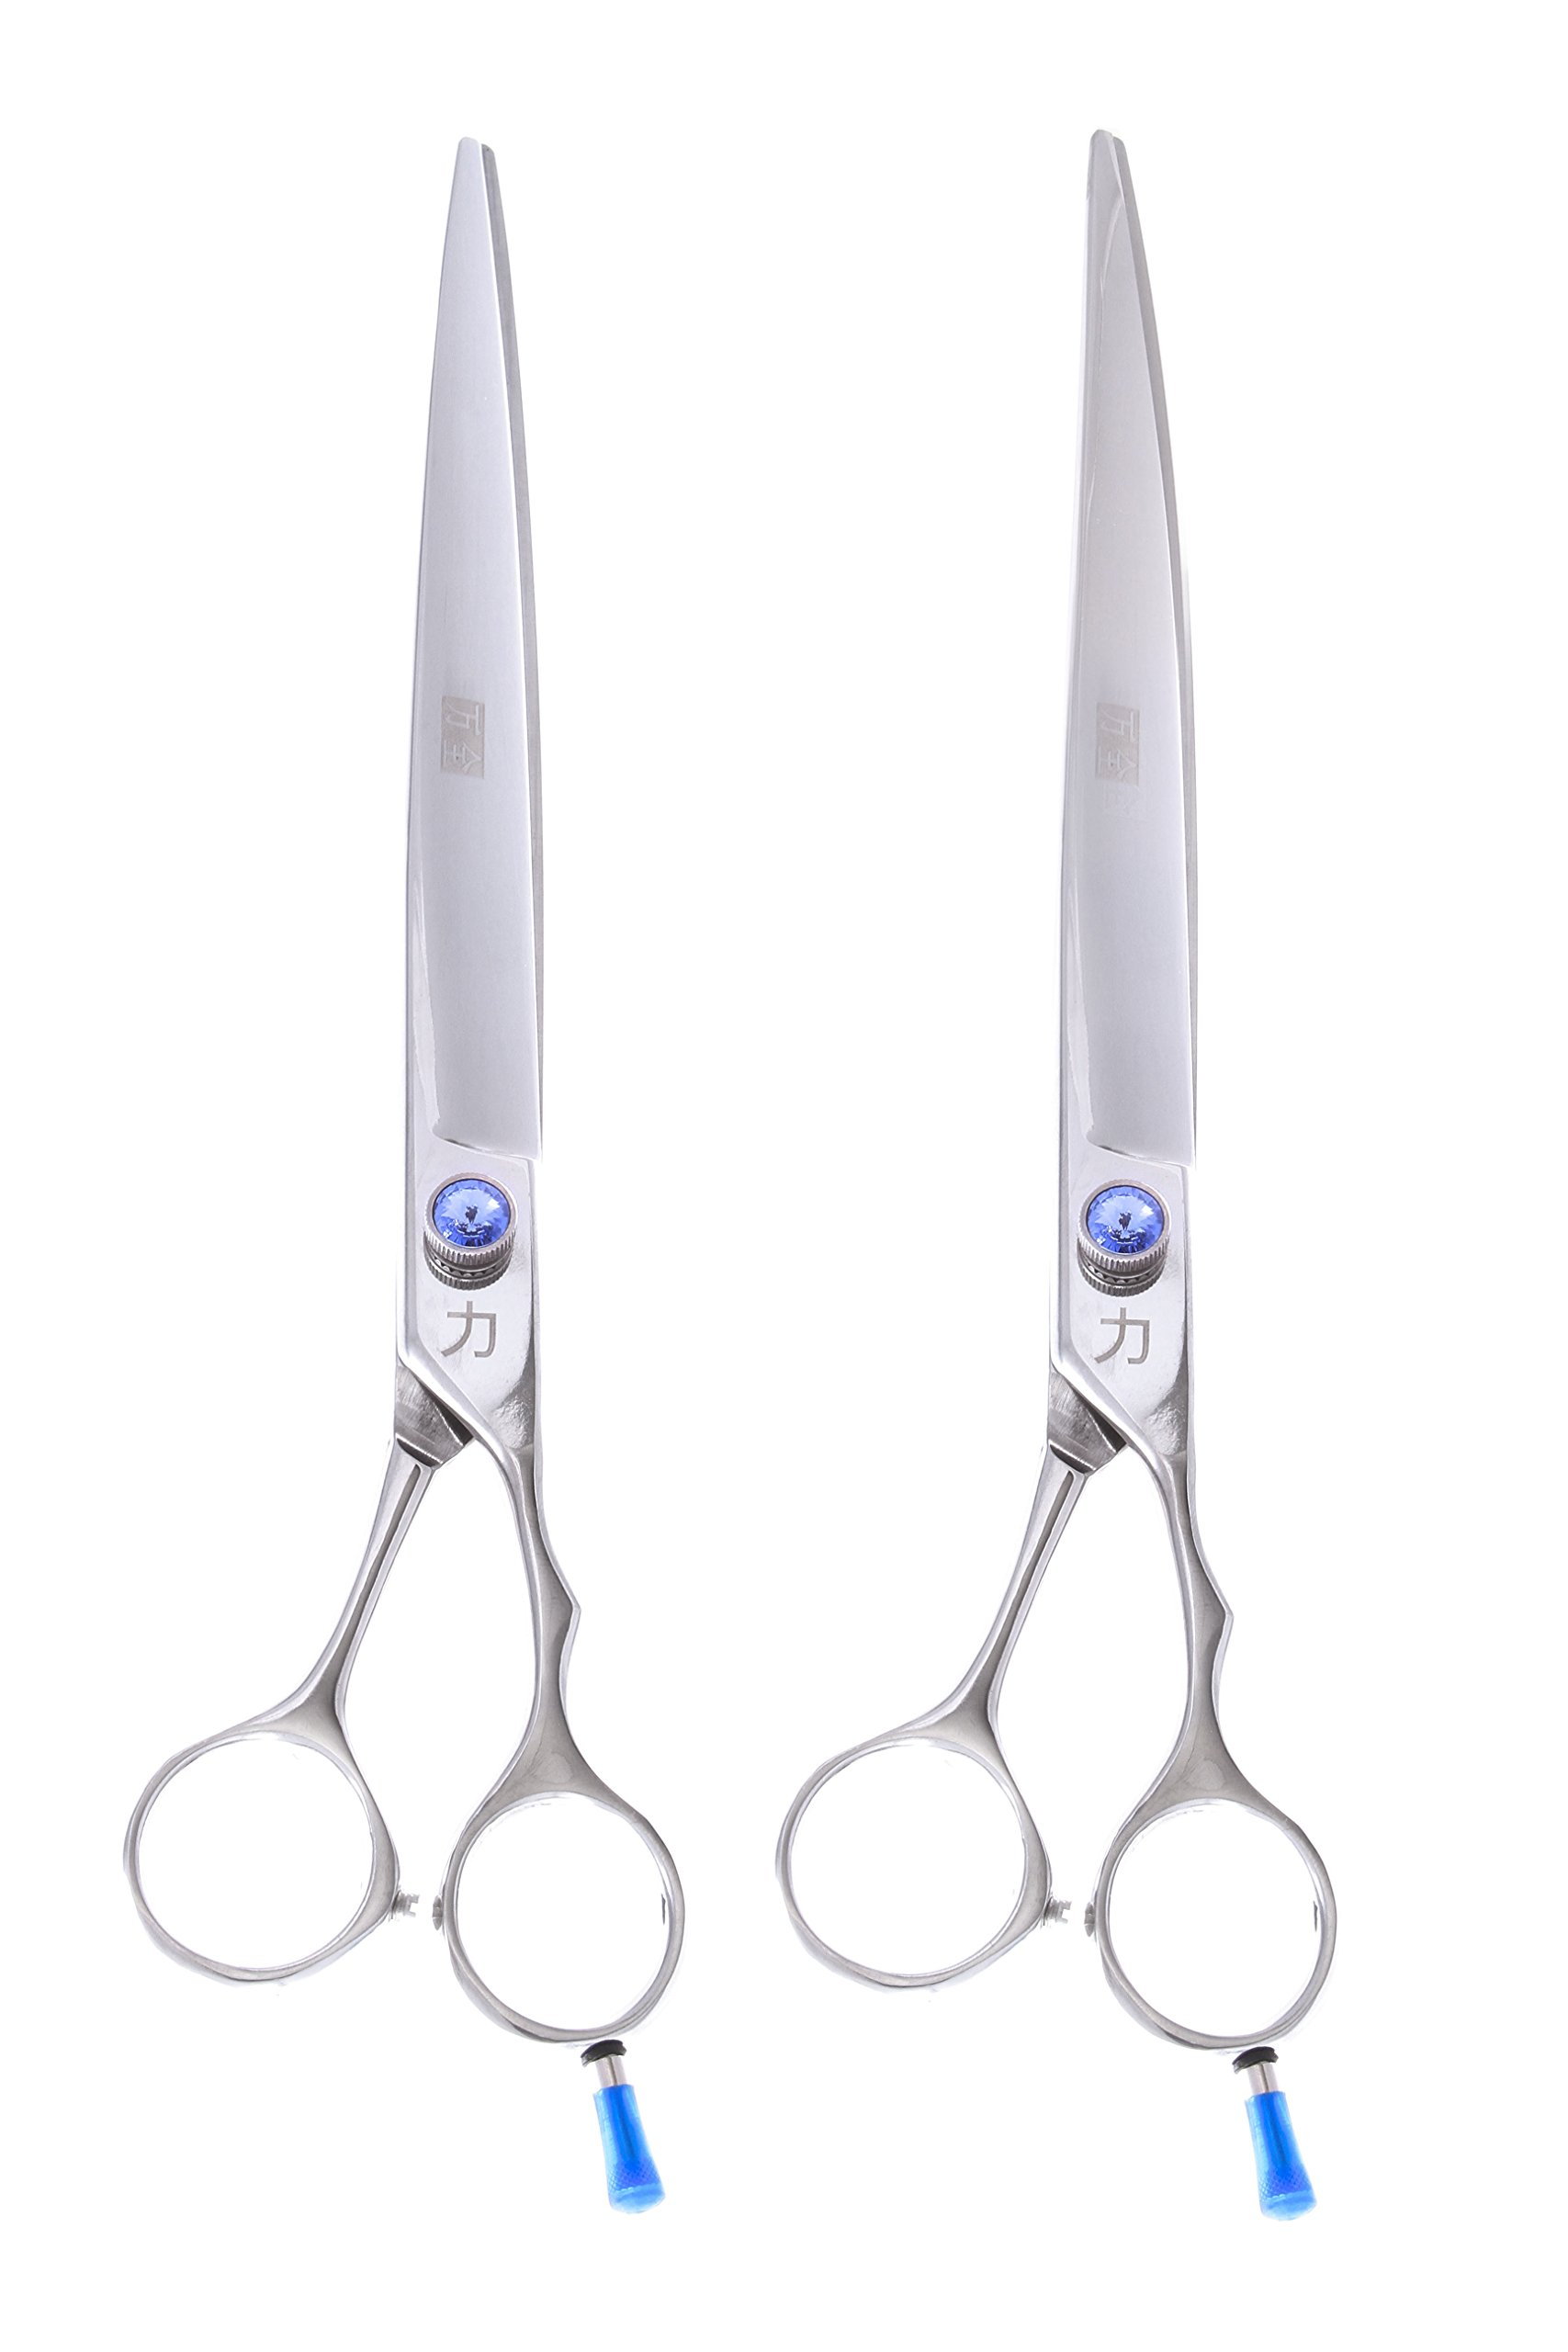 ShearsDirect Japanese 440C Stainless Steel Grooming Shears with Opposing Handles (Set of 2), 10''